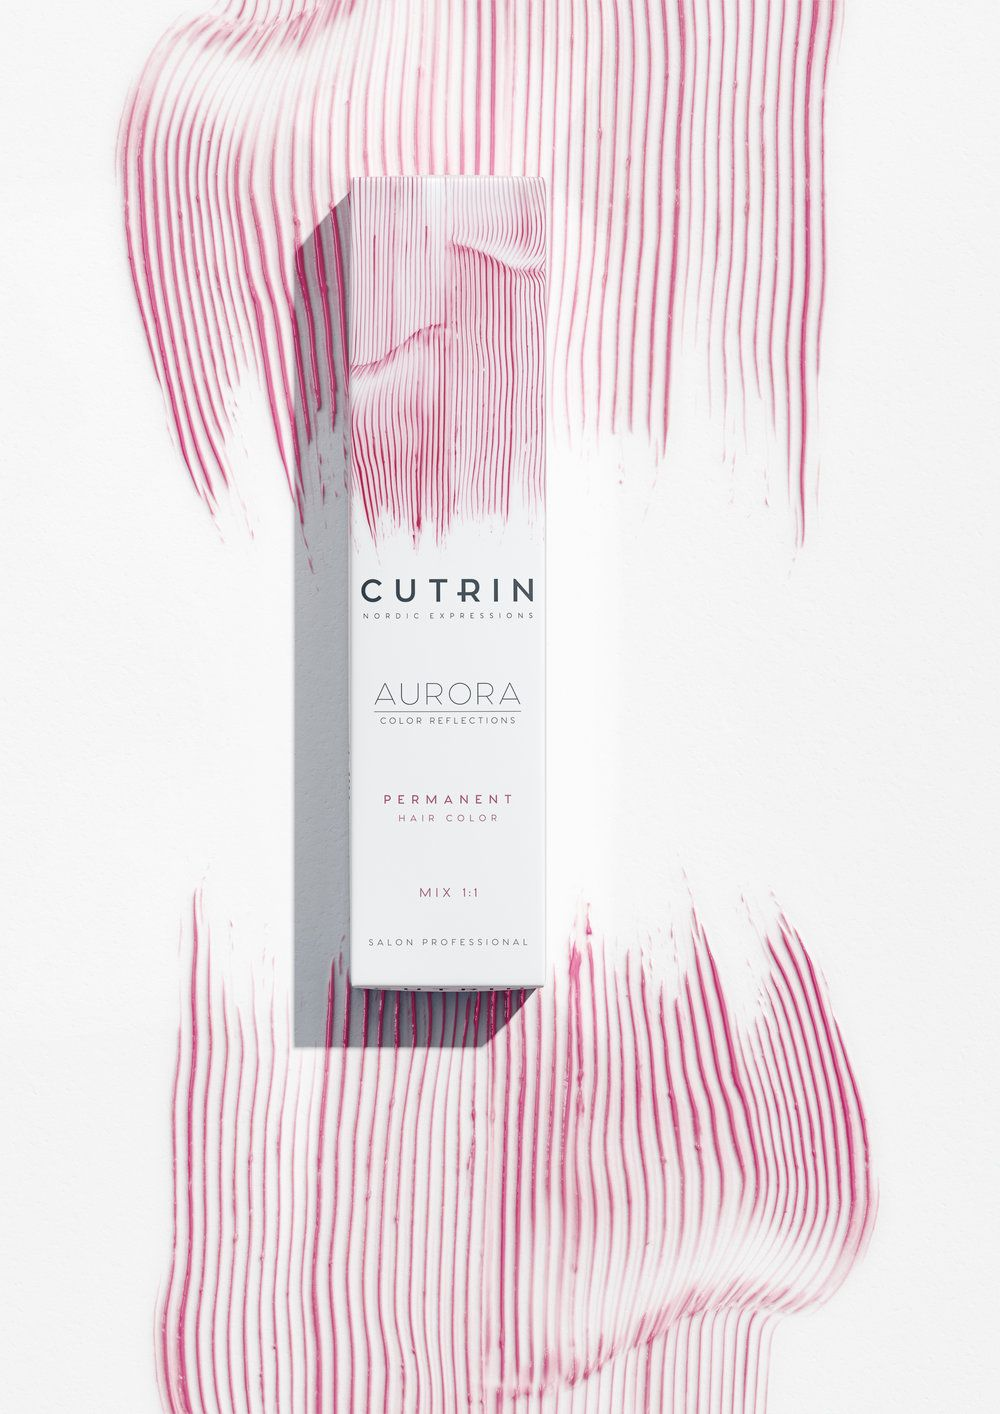 JDO Take Nordic Hair Care Brand Cutrin Back to Its Roots